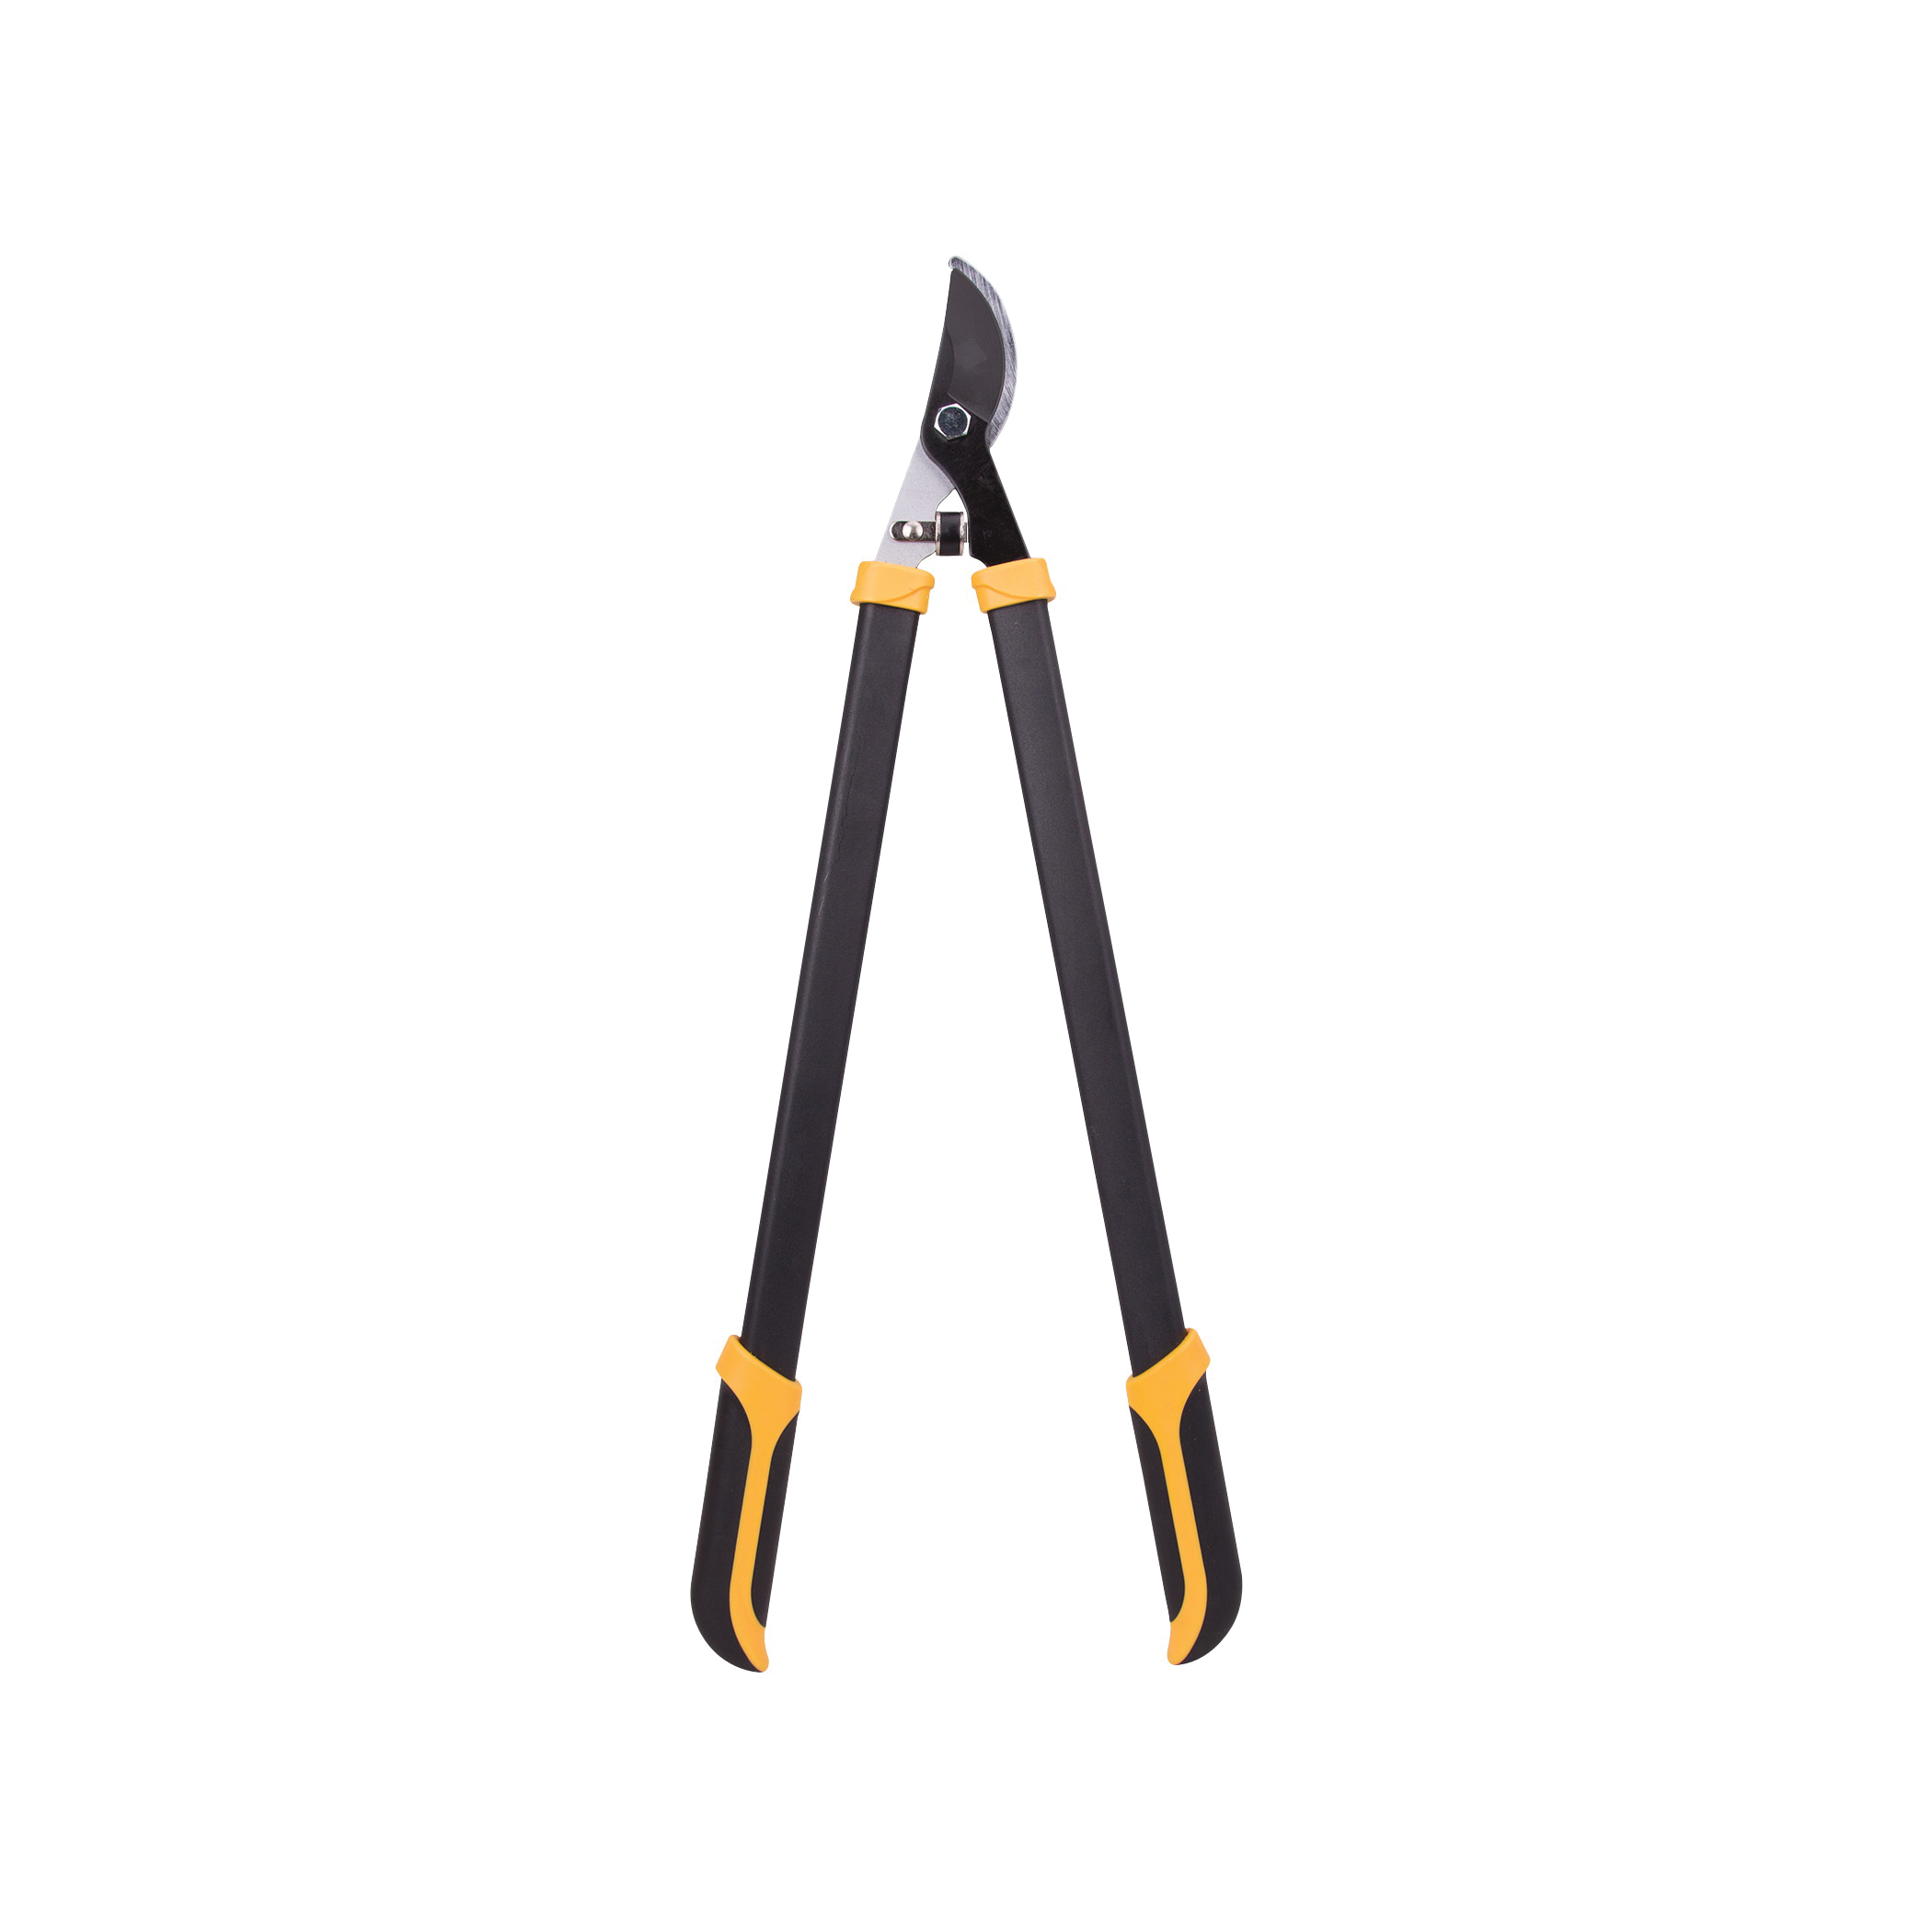 Picture of Landscapers Select GL4196 Deluxe Bypass Lopper, 1-1/4 in Cutting Capacity, Carbon Steel Blade, Steel Handle